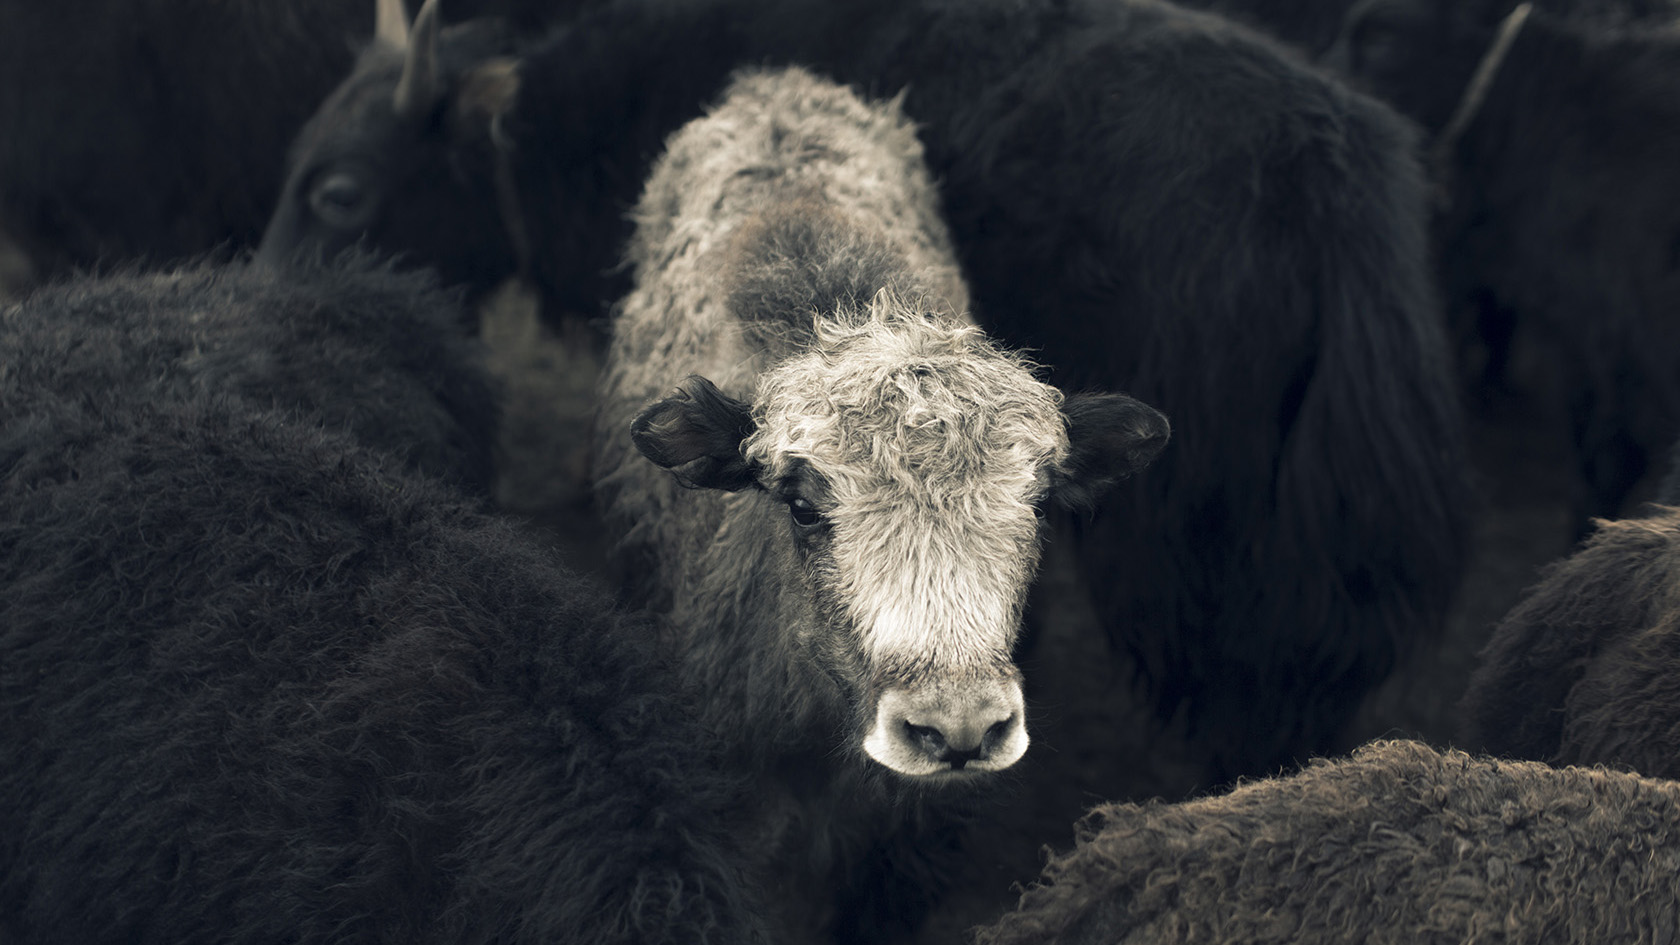 Tengri's Khangai Noble Yarns® support an indigenous species of Khangai mountain yak, helping to protect and support biodiversity and enabling other wildlife to thrive.